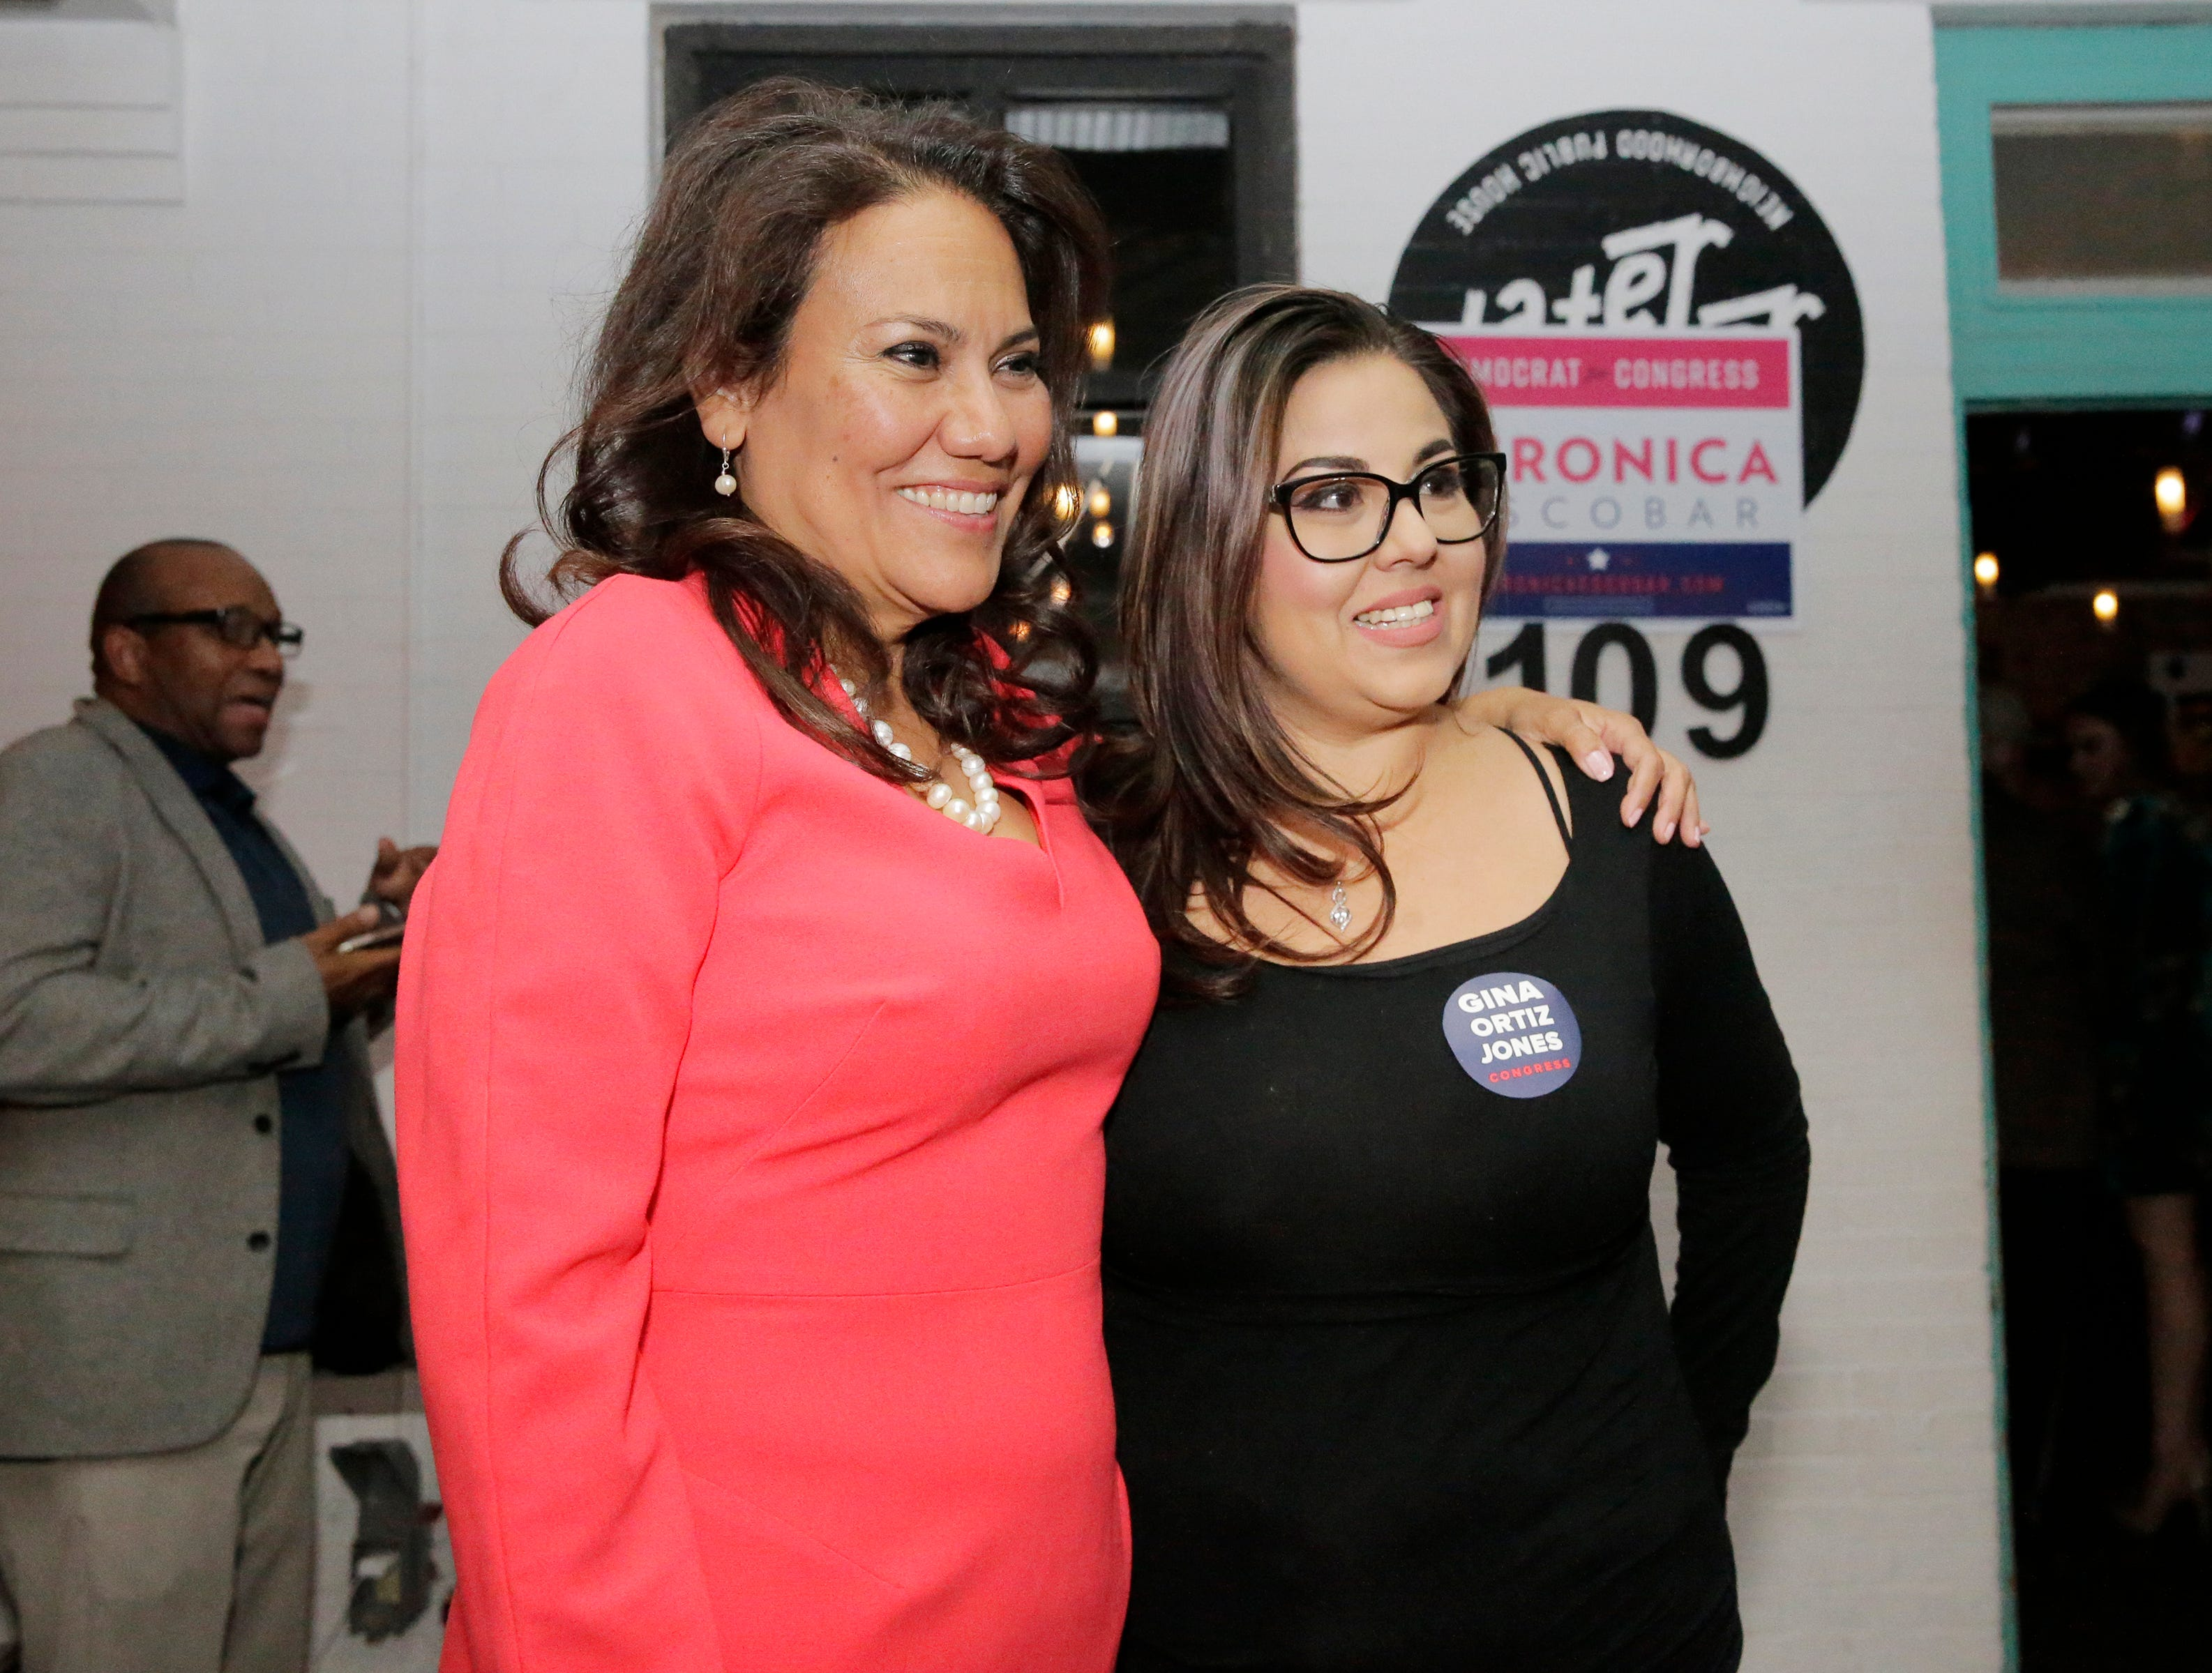 U.S. Rep.-elect Veronica Escobar celebrated with supporters at Later Later in Downtown El Paso. She will be one of the first Latinas from Texas in Congress.